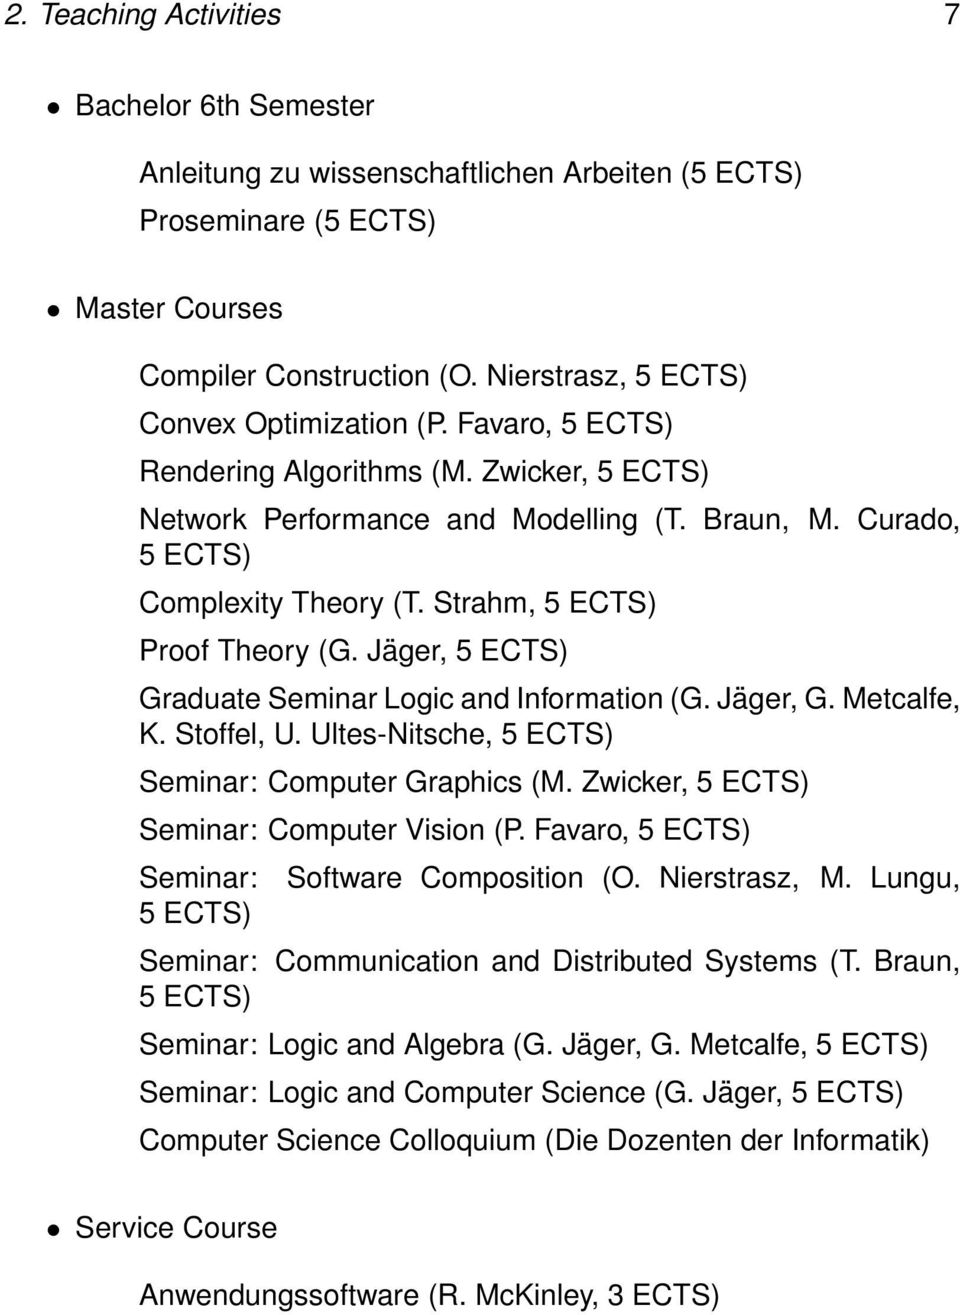 Strahm, 5 ECTS) Proof Theory (G. Jäger, 5 ECTS) Graduate Seminar Logic and Information (G. Jäger, G. Metcalfe, K. Stoffel, U. Ultes-Nitsche, 5 ECTS) Seminar: Computer Graphics (M.